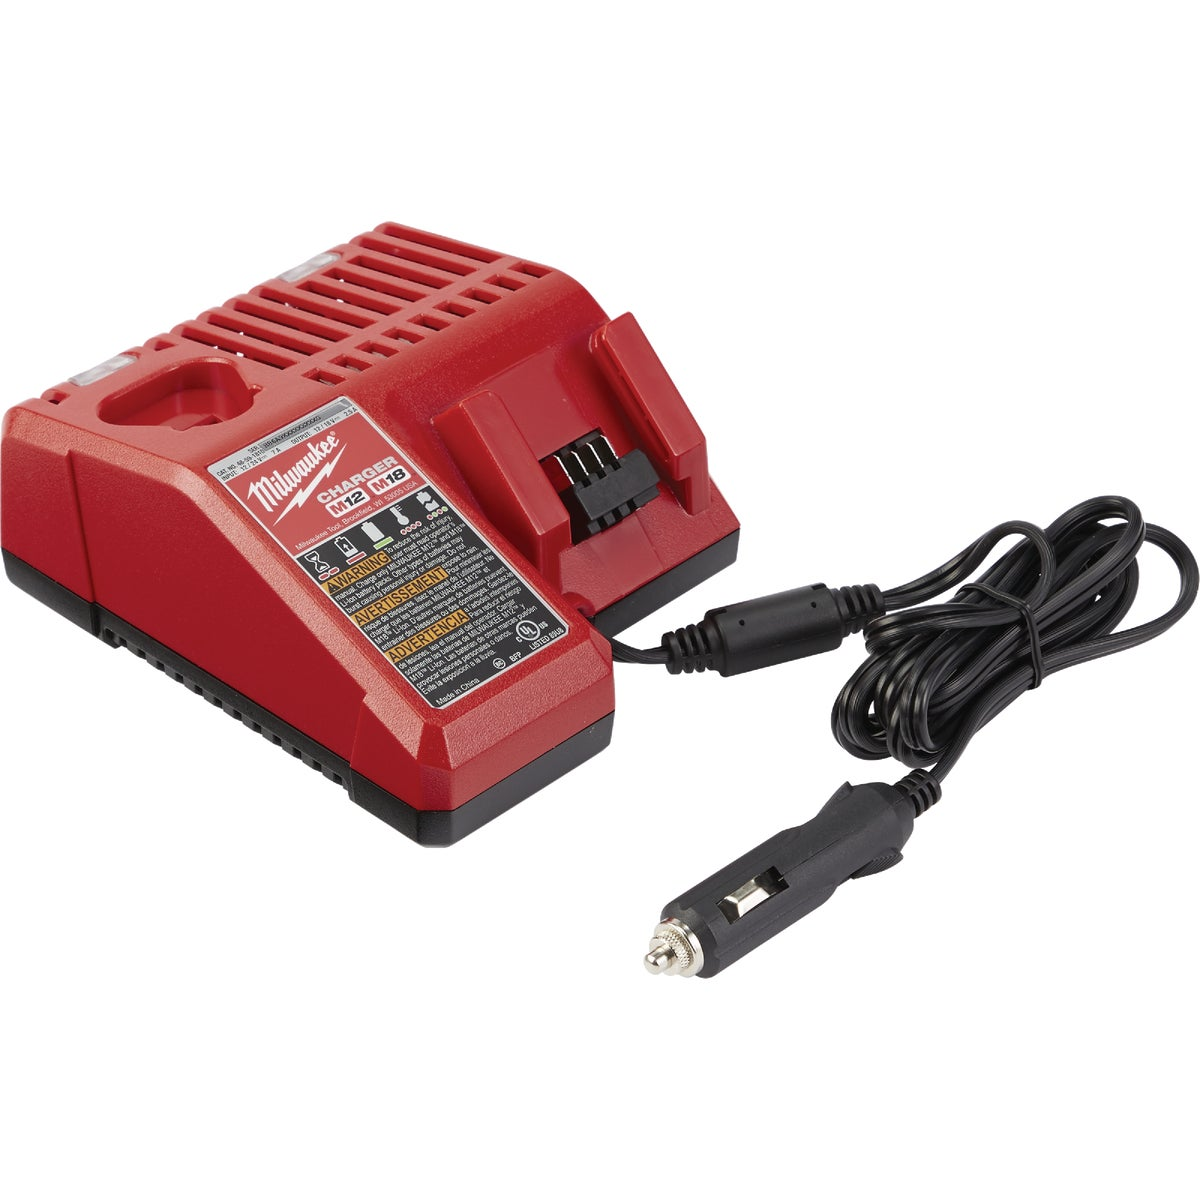 M18 AC/DC CHARGER - 2710-20 by Milwaukee Elec Tool